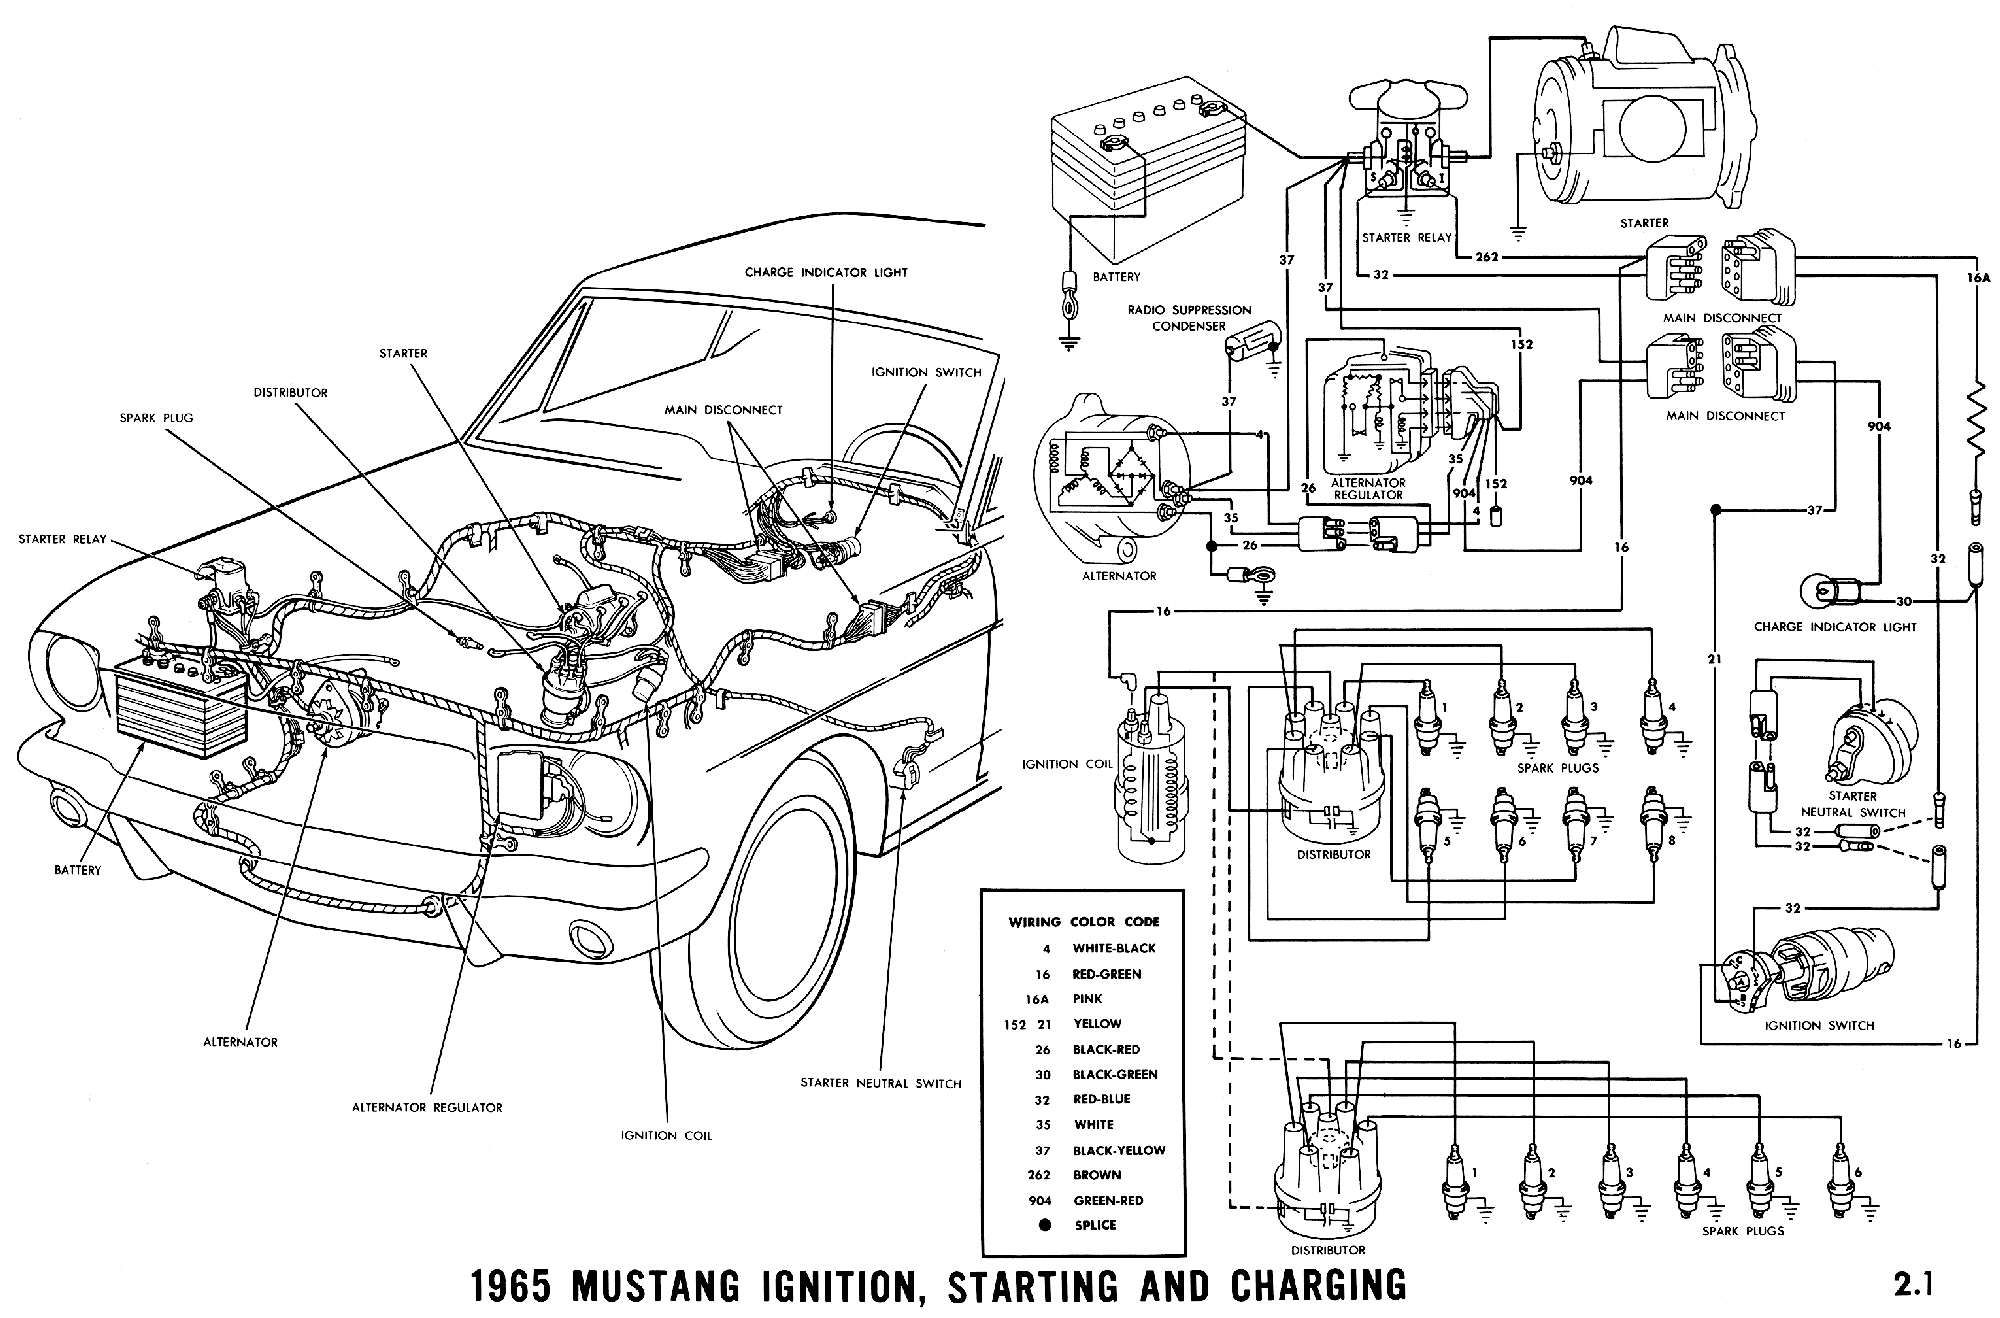 1965 Mustang Turn Signal Wiring Diagram from i.pinimg.com